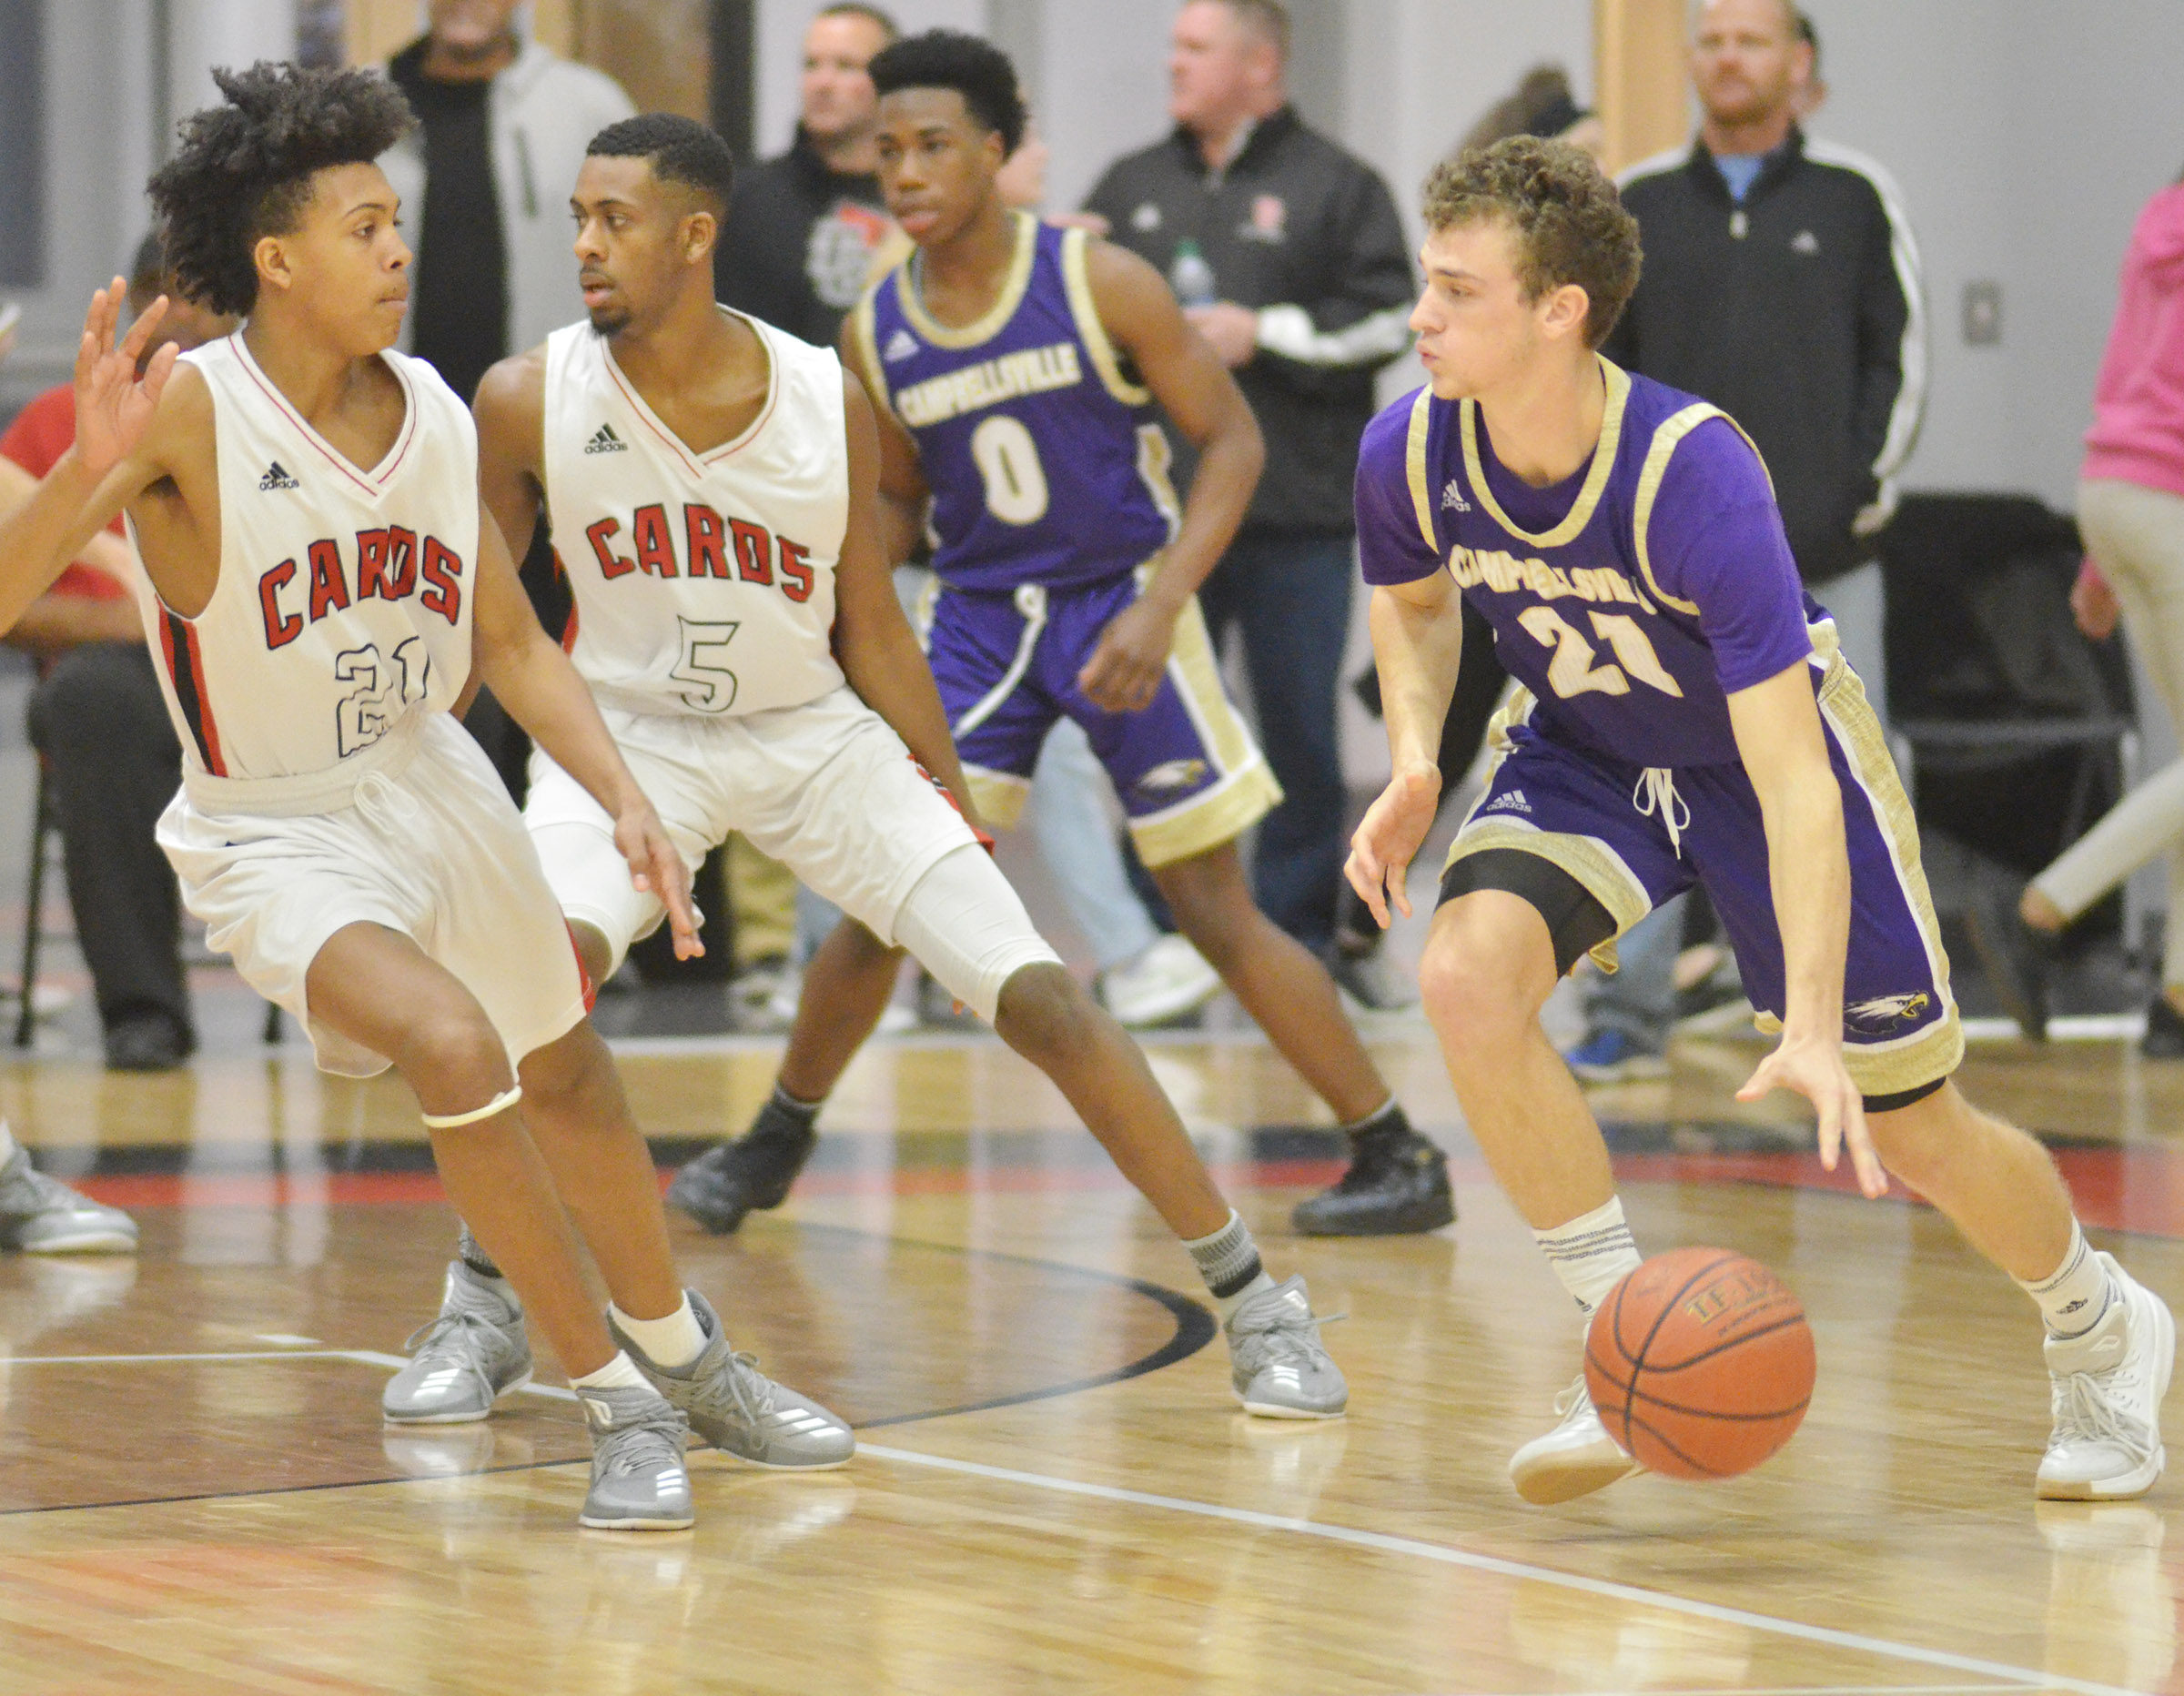 CHS senior Connor Wilson dribbles.